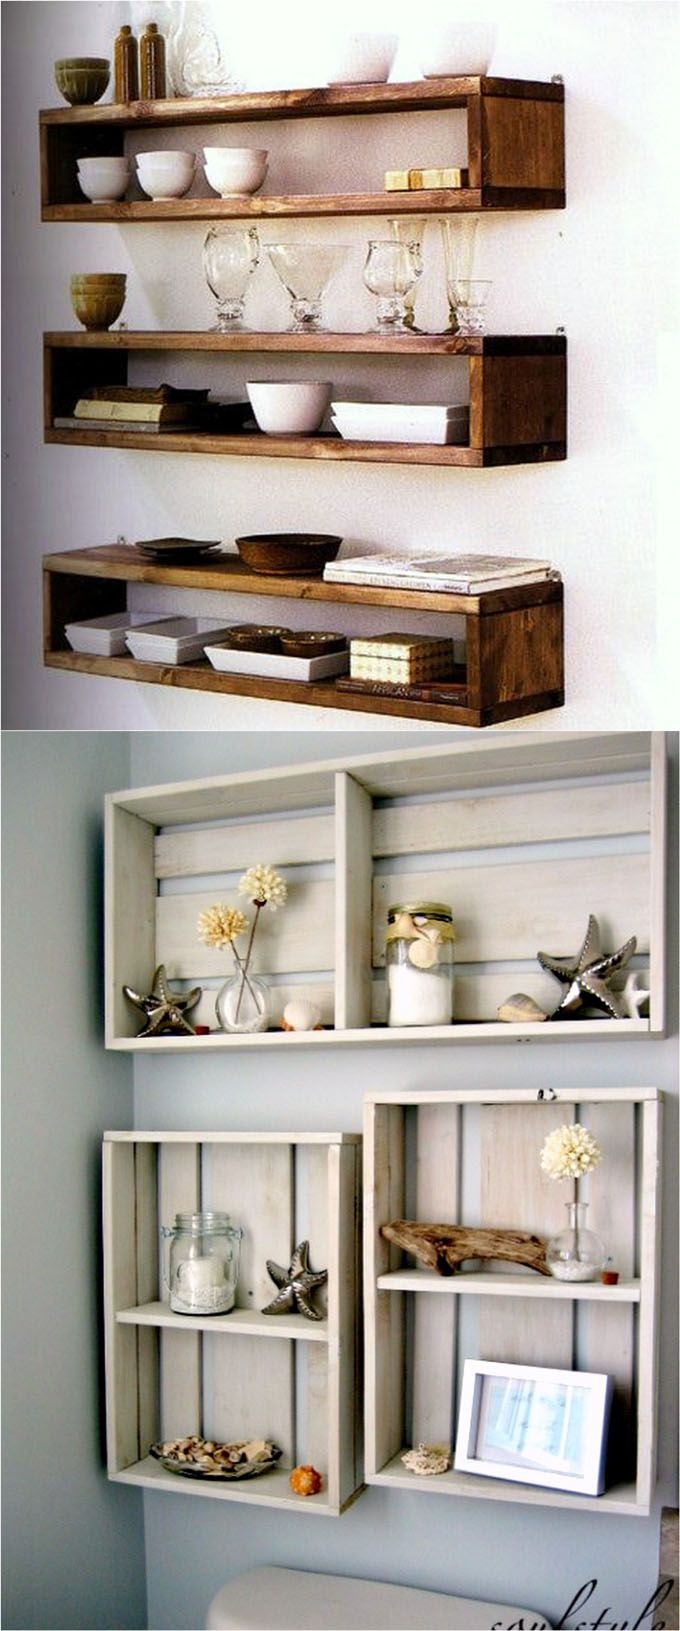 16 easy tutorials on building beautiful floating shelves and wall shelves! Check o